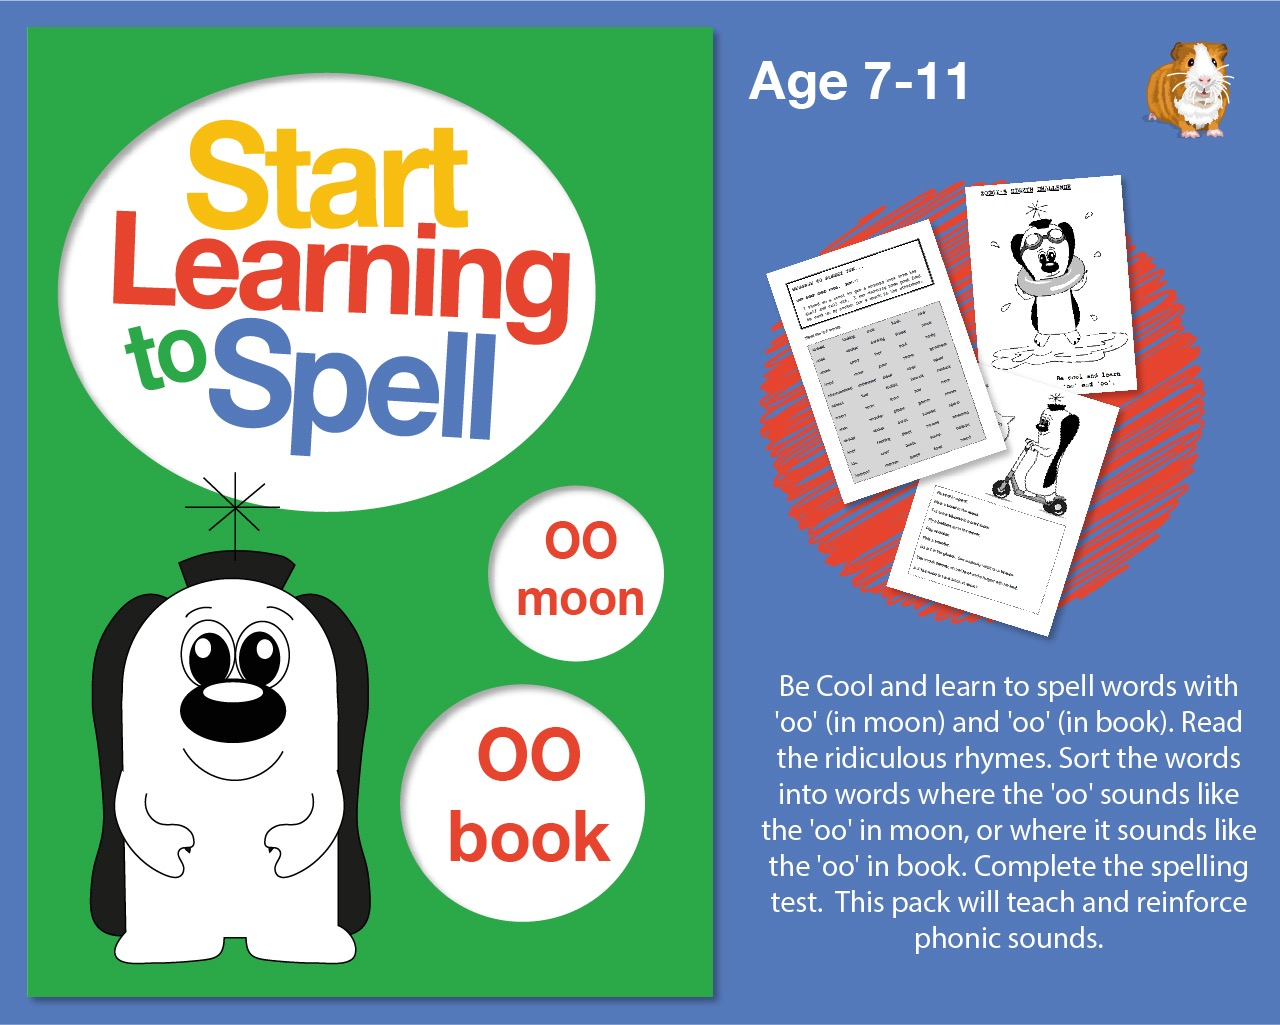 'Be Cool' And Learn To Spell Words With 'oo' and 'oo' (7-11 years)